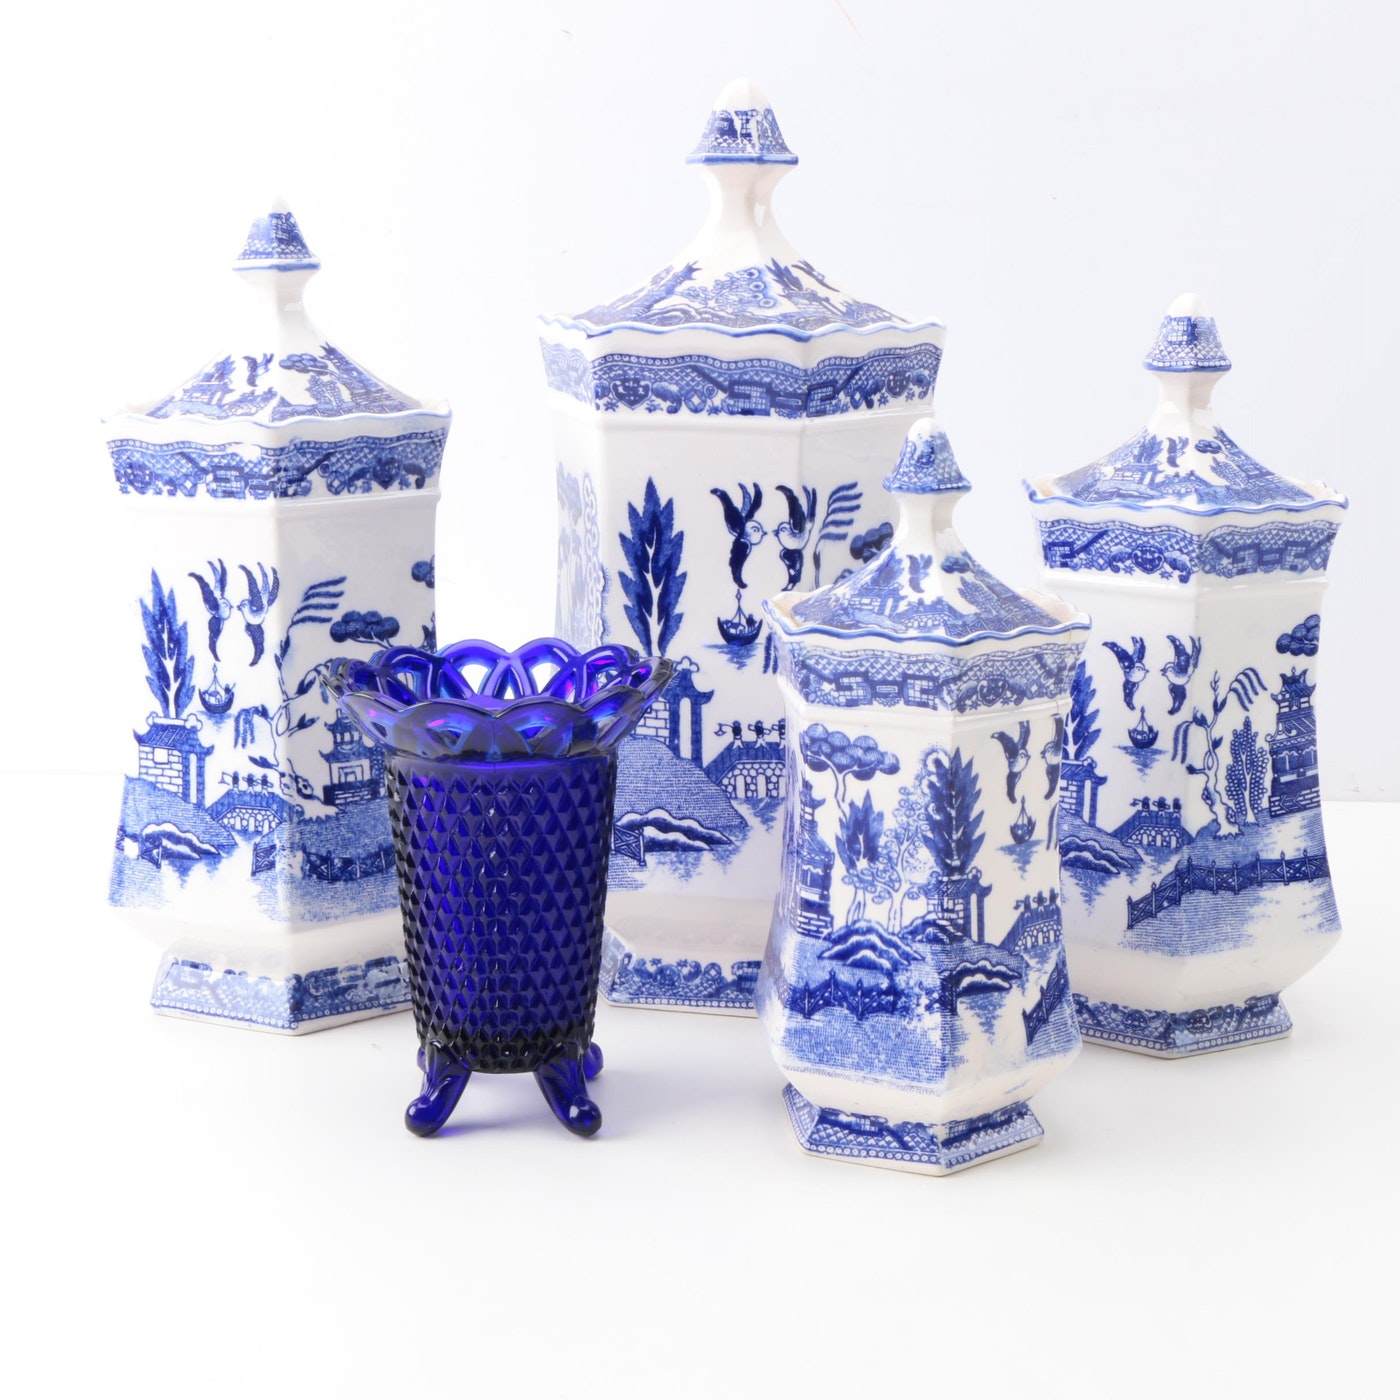 Blue Willow Transferware Ceramic Canisters And Cobalt Blue Glass Vase Ebth